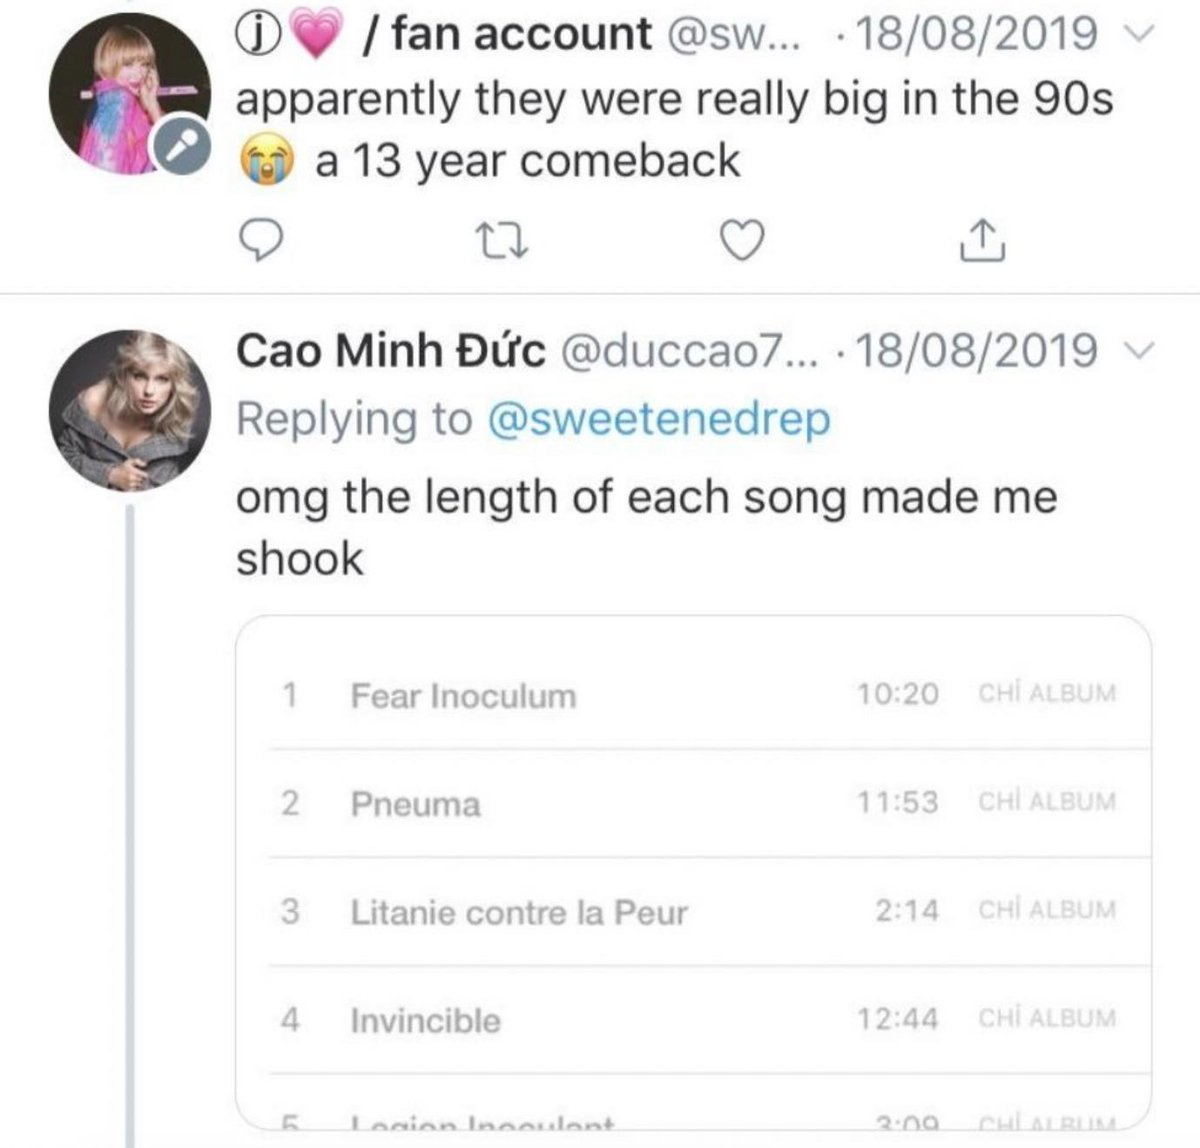 Ryan Broderick On Twitter Taylor Swift Stans Learning Who Tool Are Because They Re Currently Selling More Copies Than Lover Is Really Something Special Https T Co 4udvlw1wu1 Taylor swift ретвитнул(а) paul mccartney. twitter taylor swift stans learning